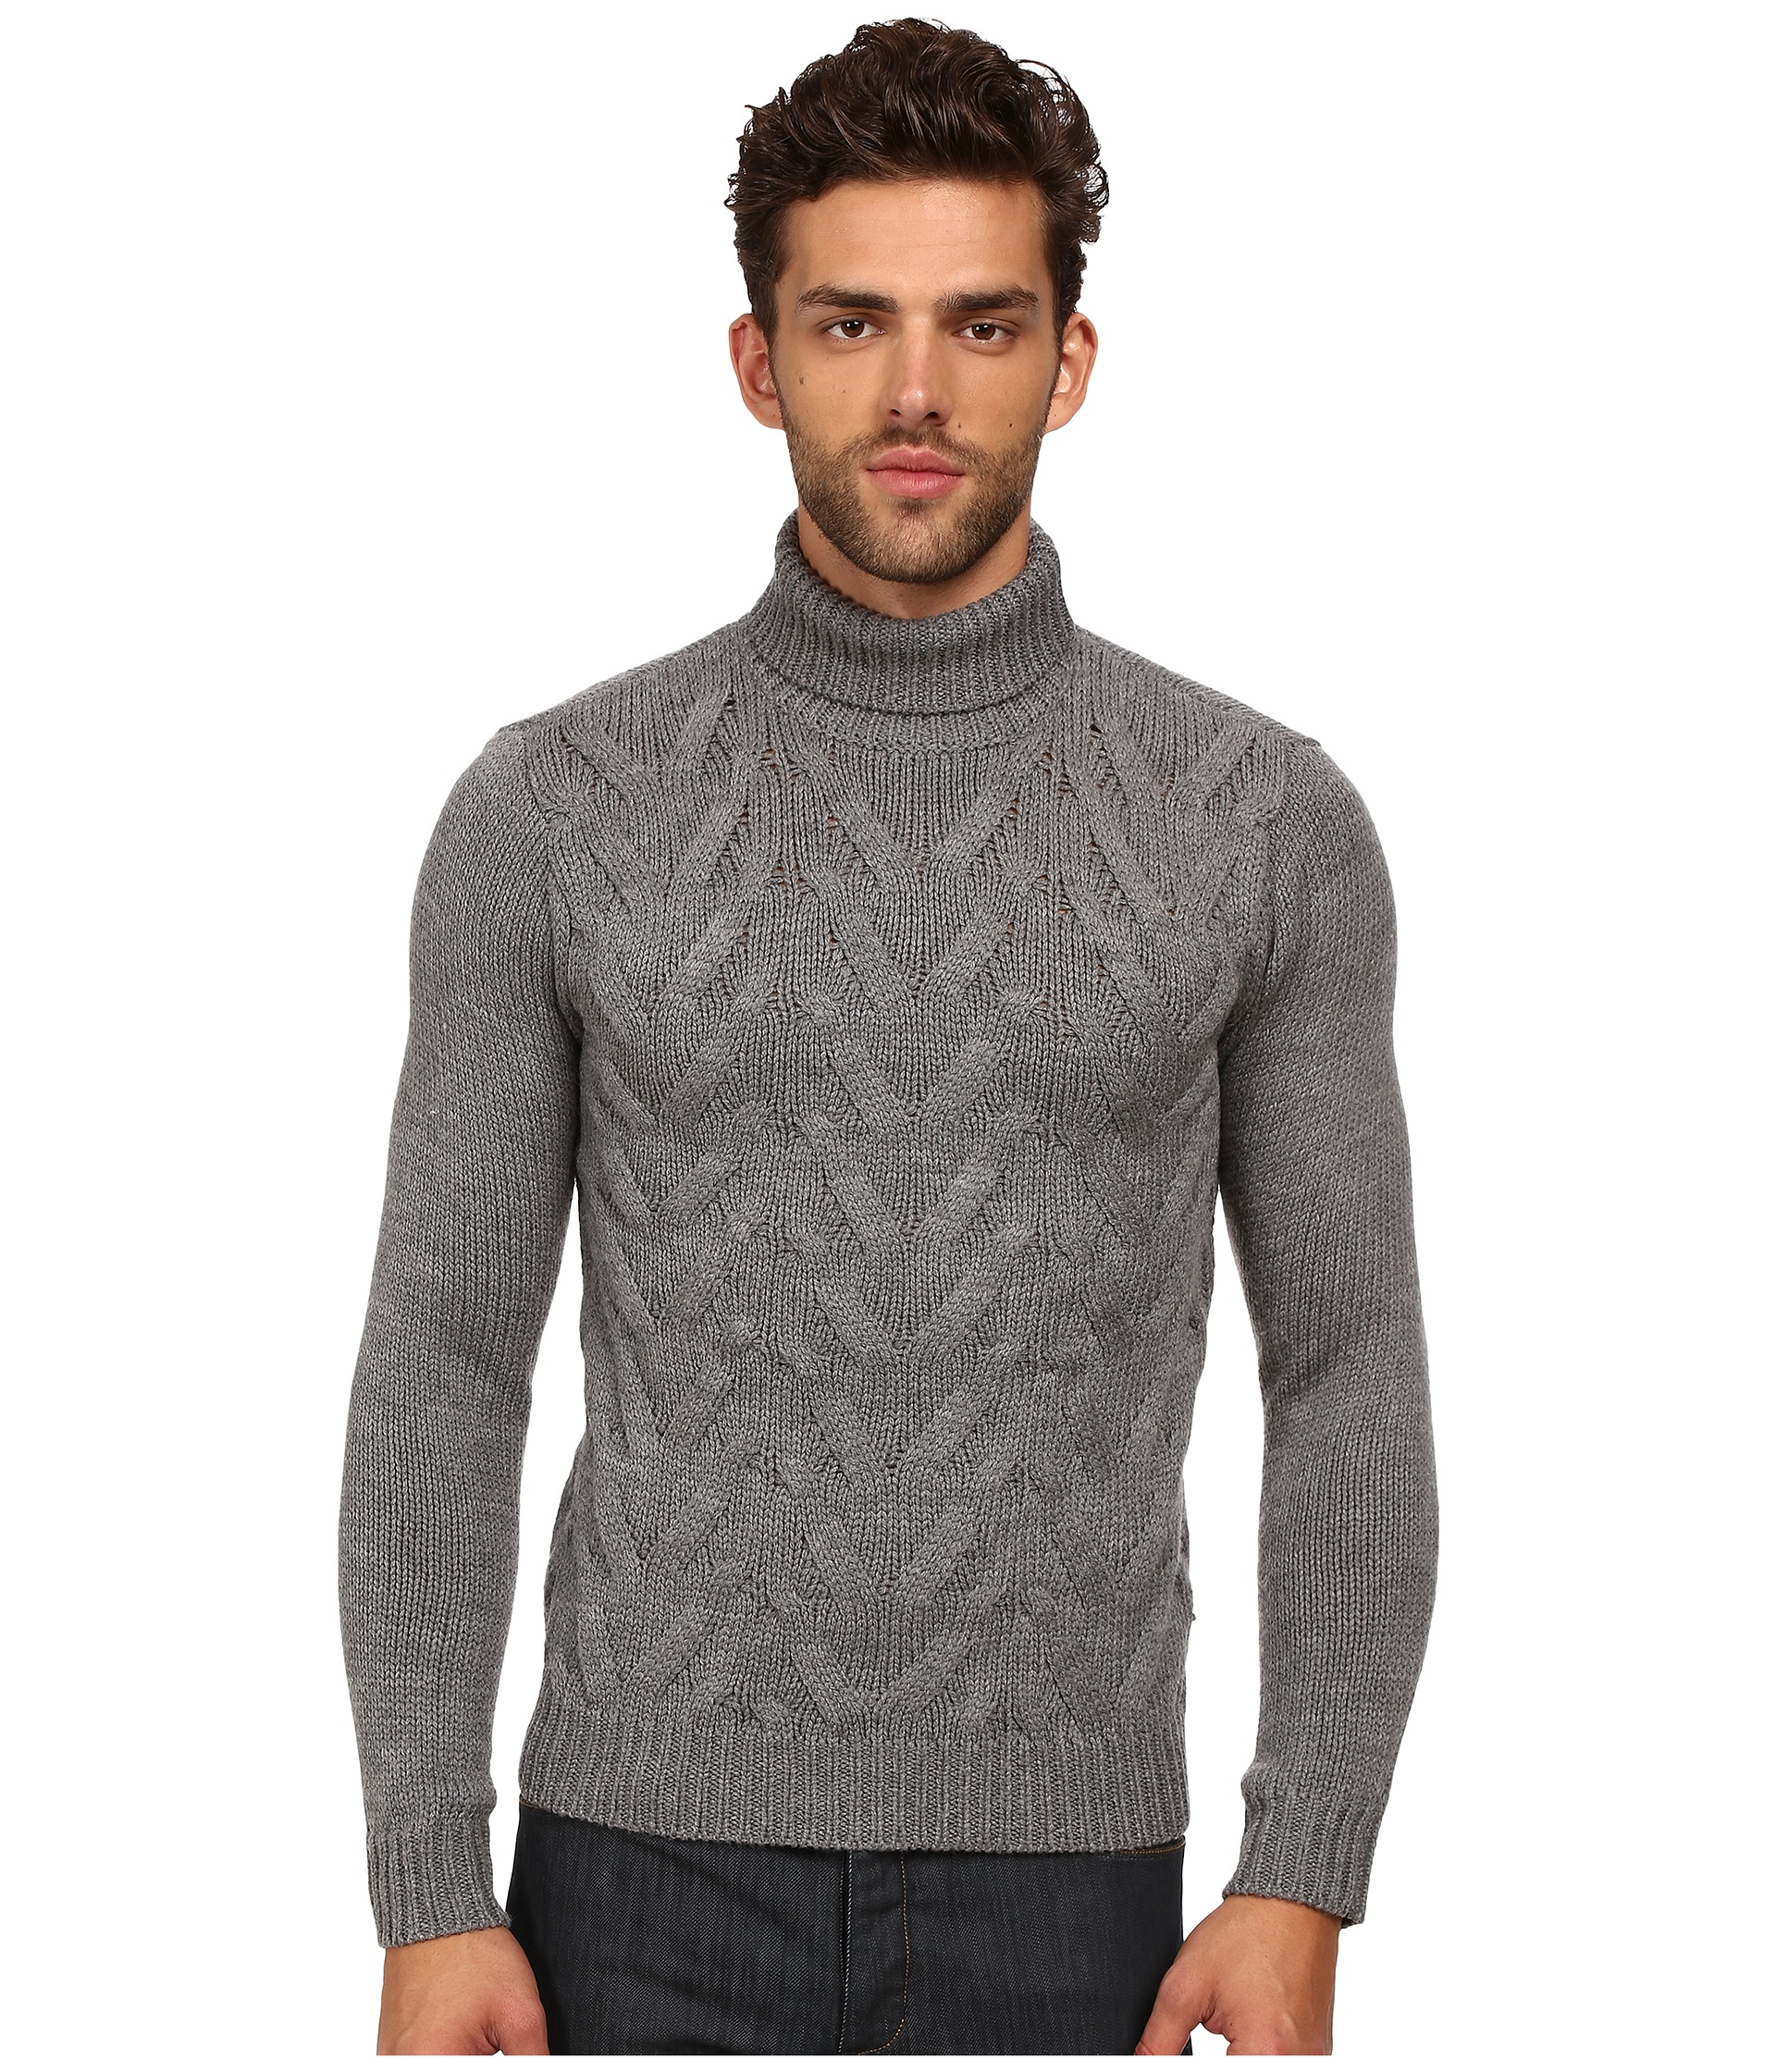 017f40e24c Lyst - The Kooples Sport Cable Wool Turtleneck Sweater in Gray for Men